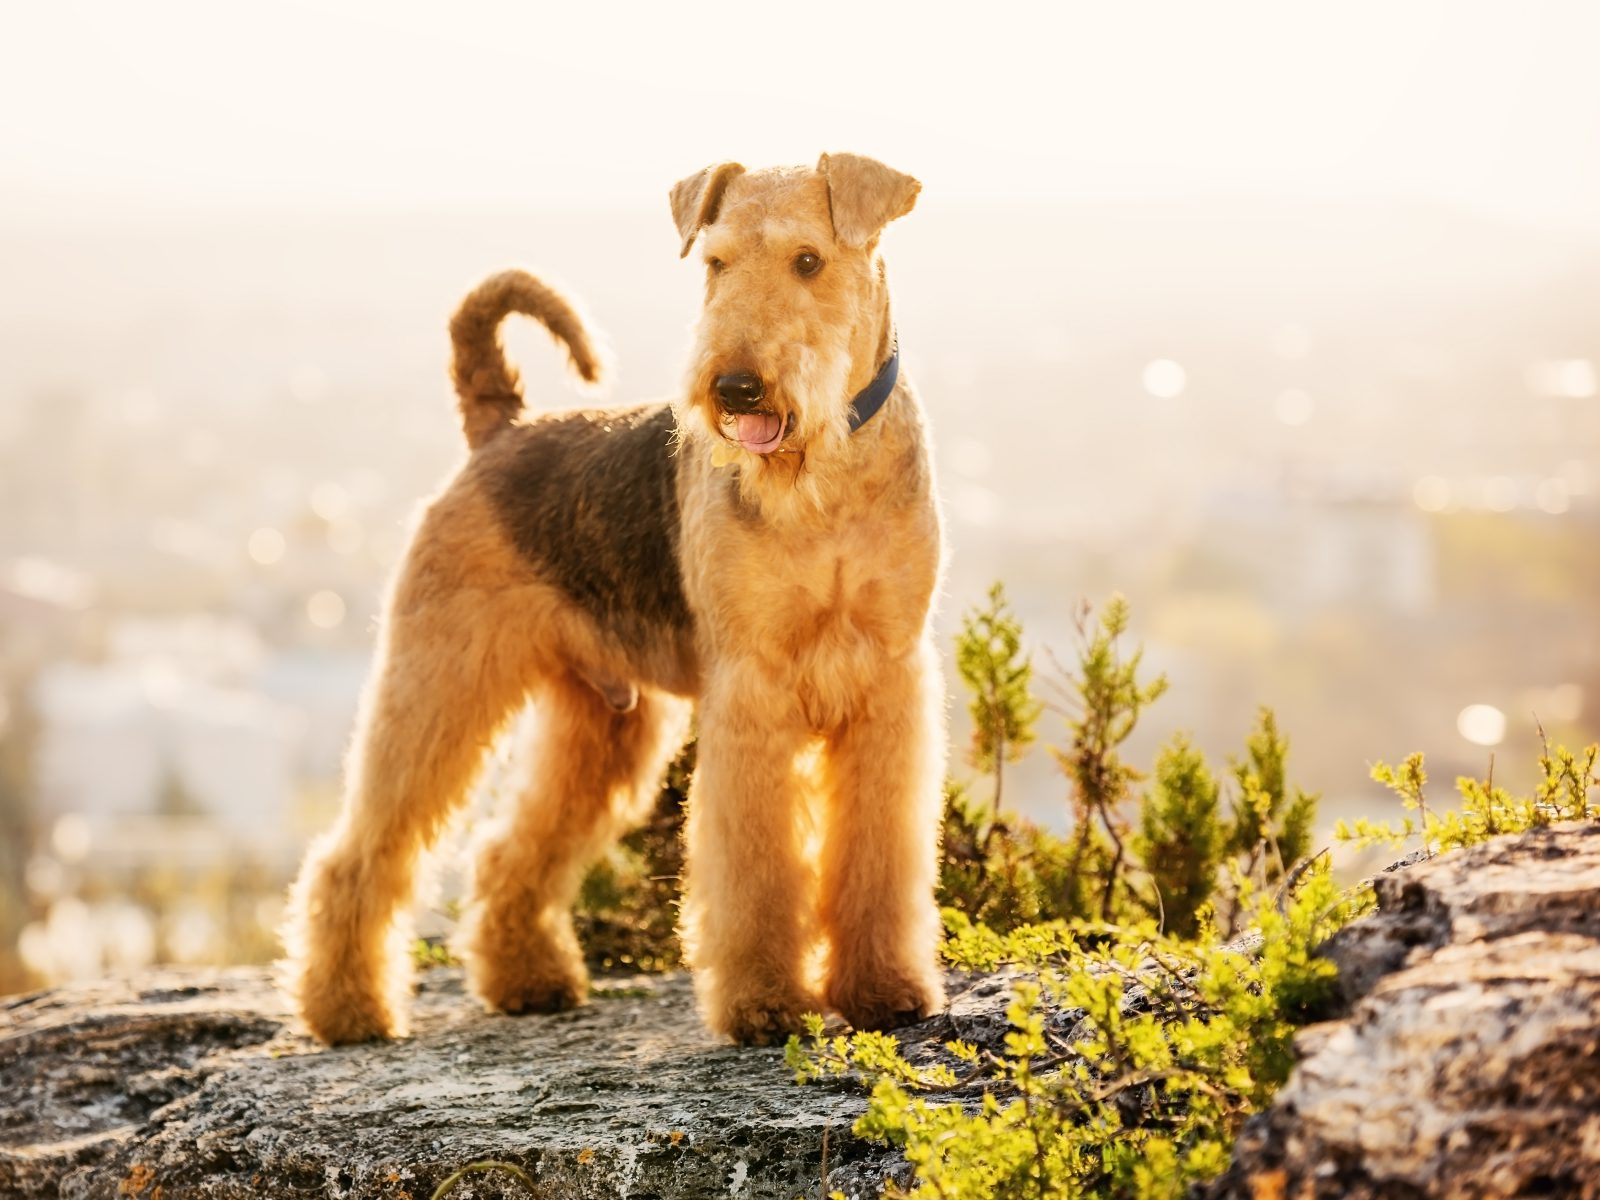 cao-airedale-terrier-atividades